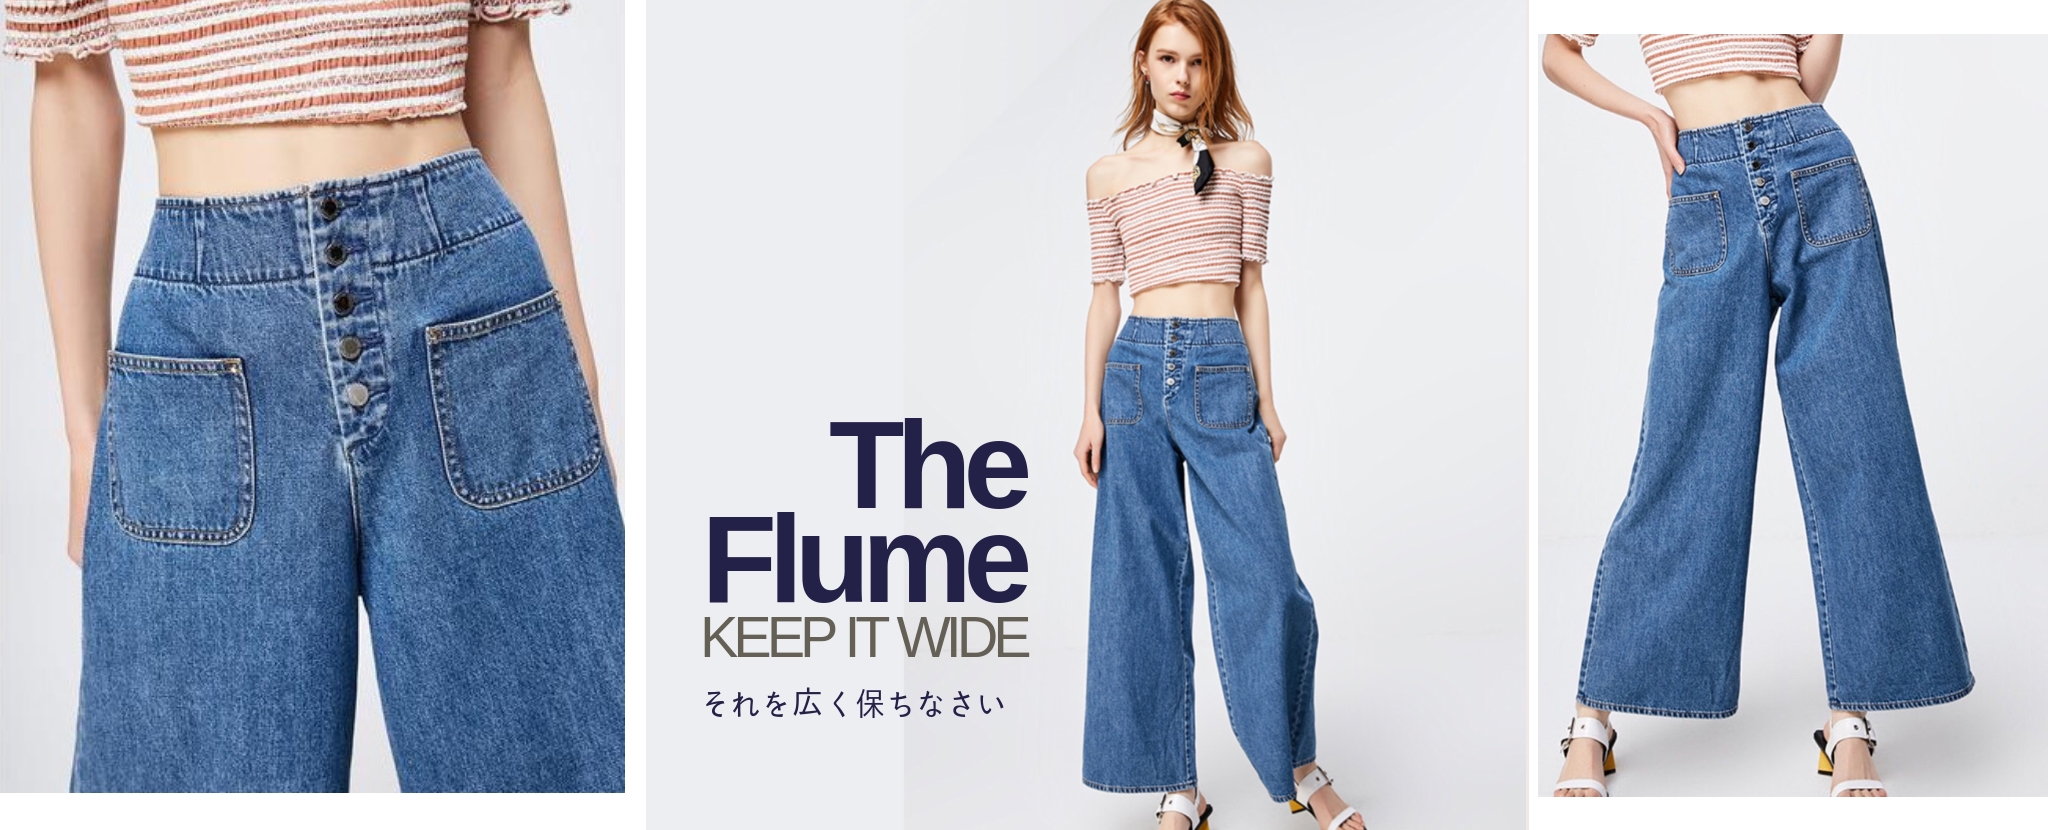 miTeigi The Flume Flare Jeans | Japanese Apparel and Home Decor Retail Shopping